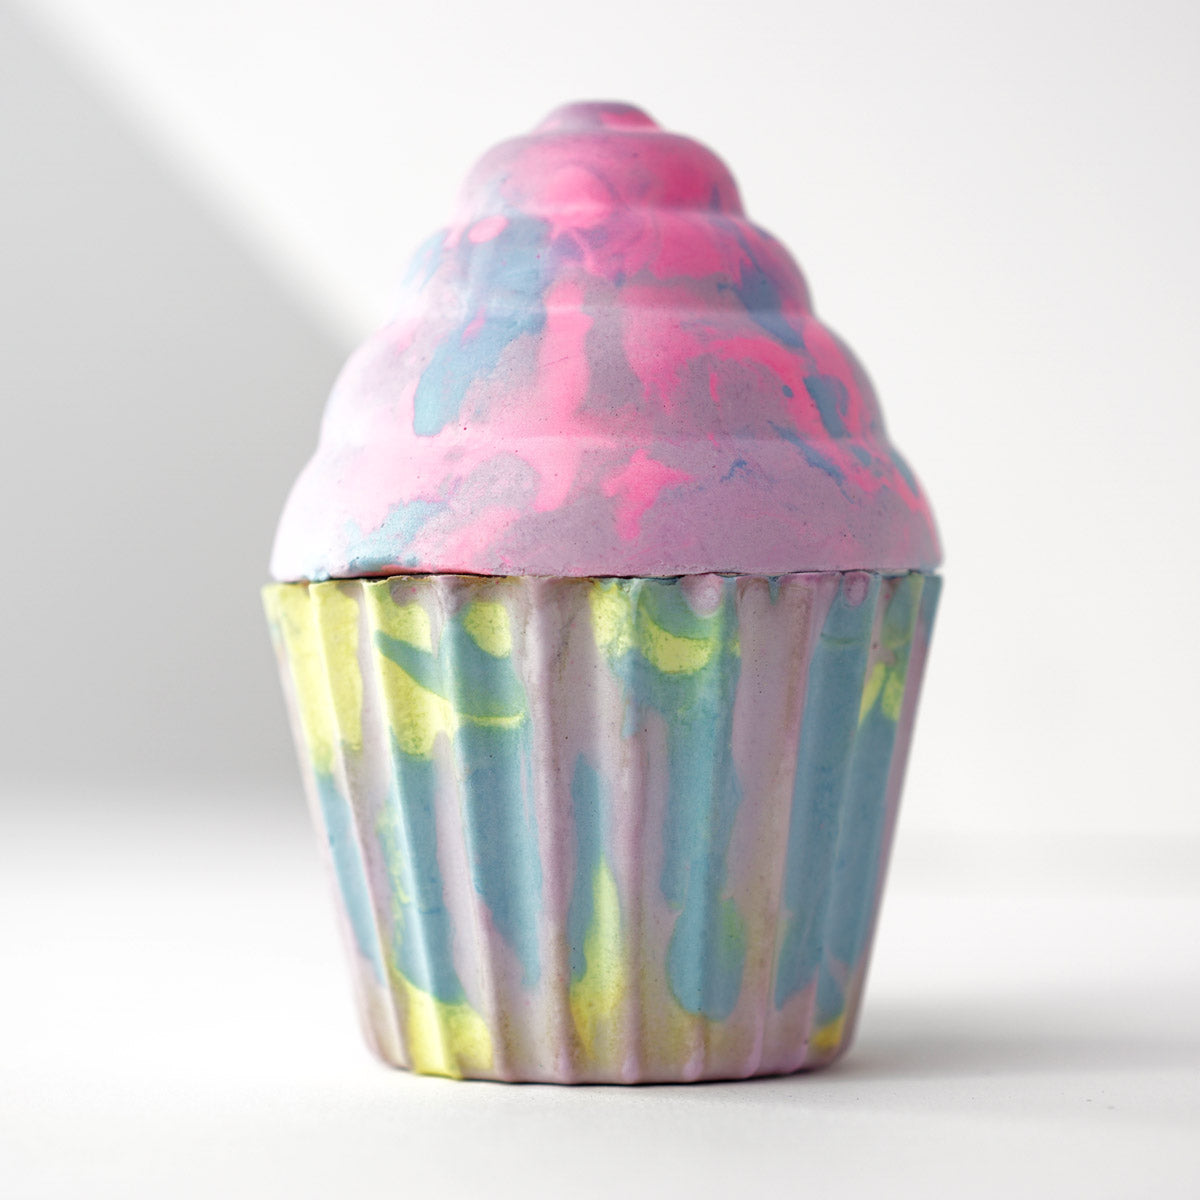 Tie-dye Cupcake Swirl - 'Give a child lifesaving vitamins & medications'